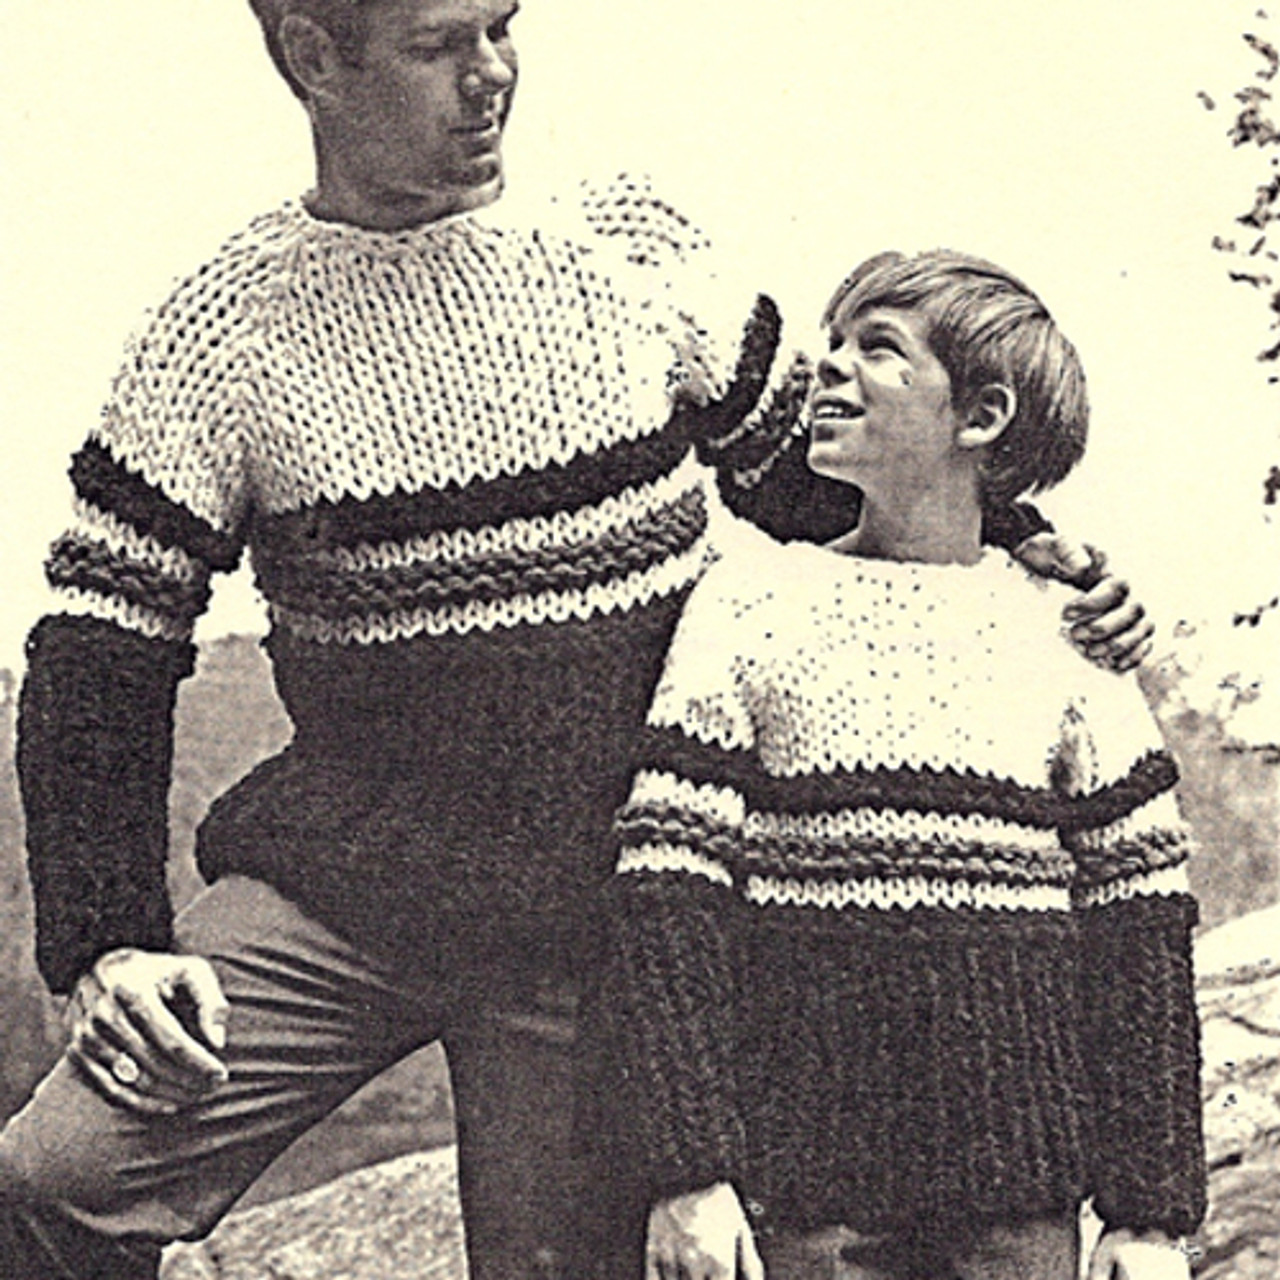 Boys Knitted Hockey Sweater Pattern with Big Needles